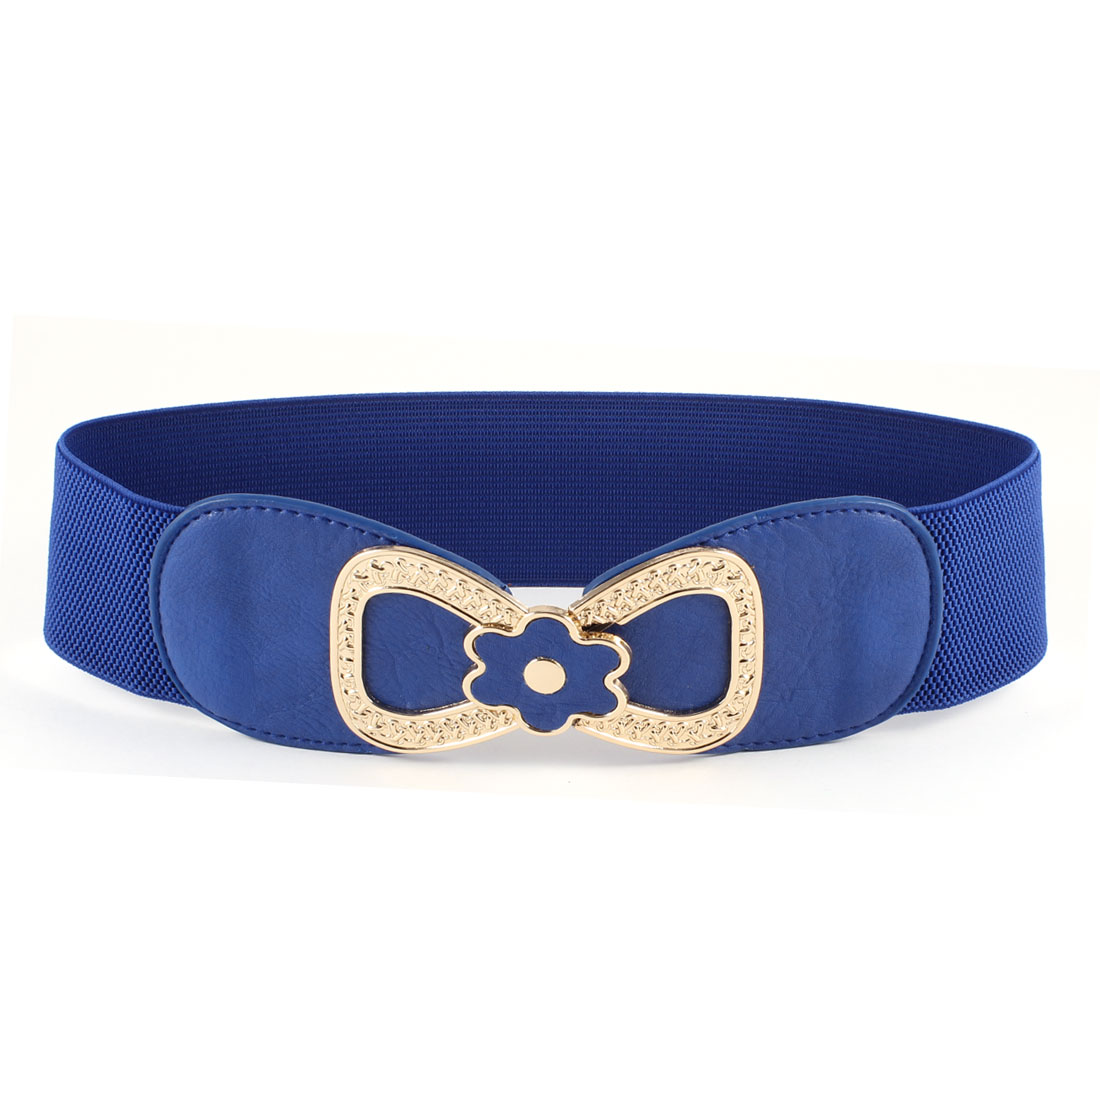 Blue Woman Faux Leather Metal 8 Shape Interlock Buckle Stretchy Waist Belt